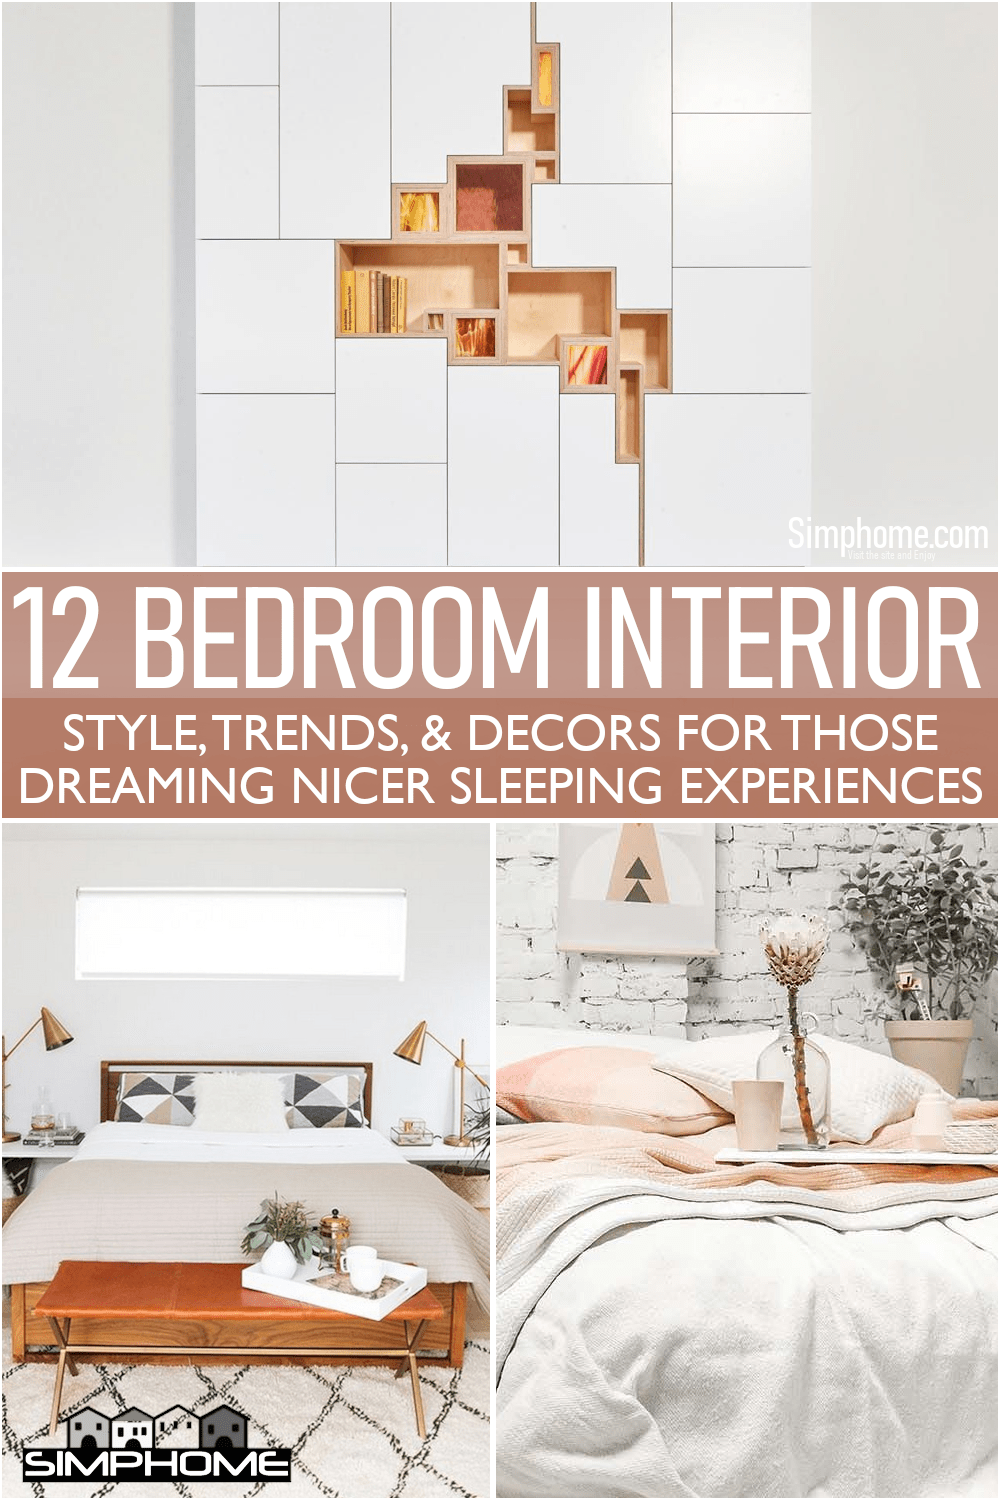 This is sweet and awesome 12 Bedroom Interior Trends for 2021